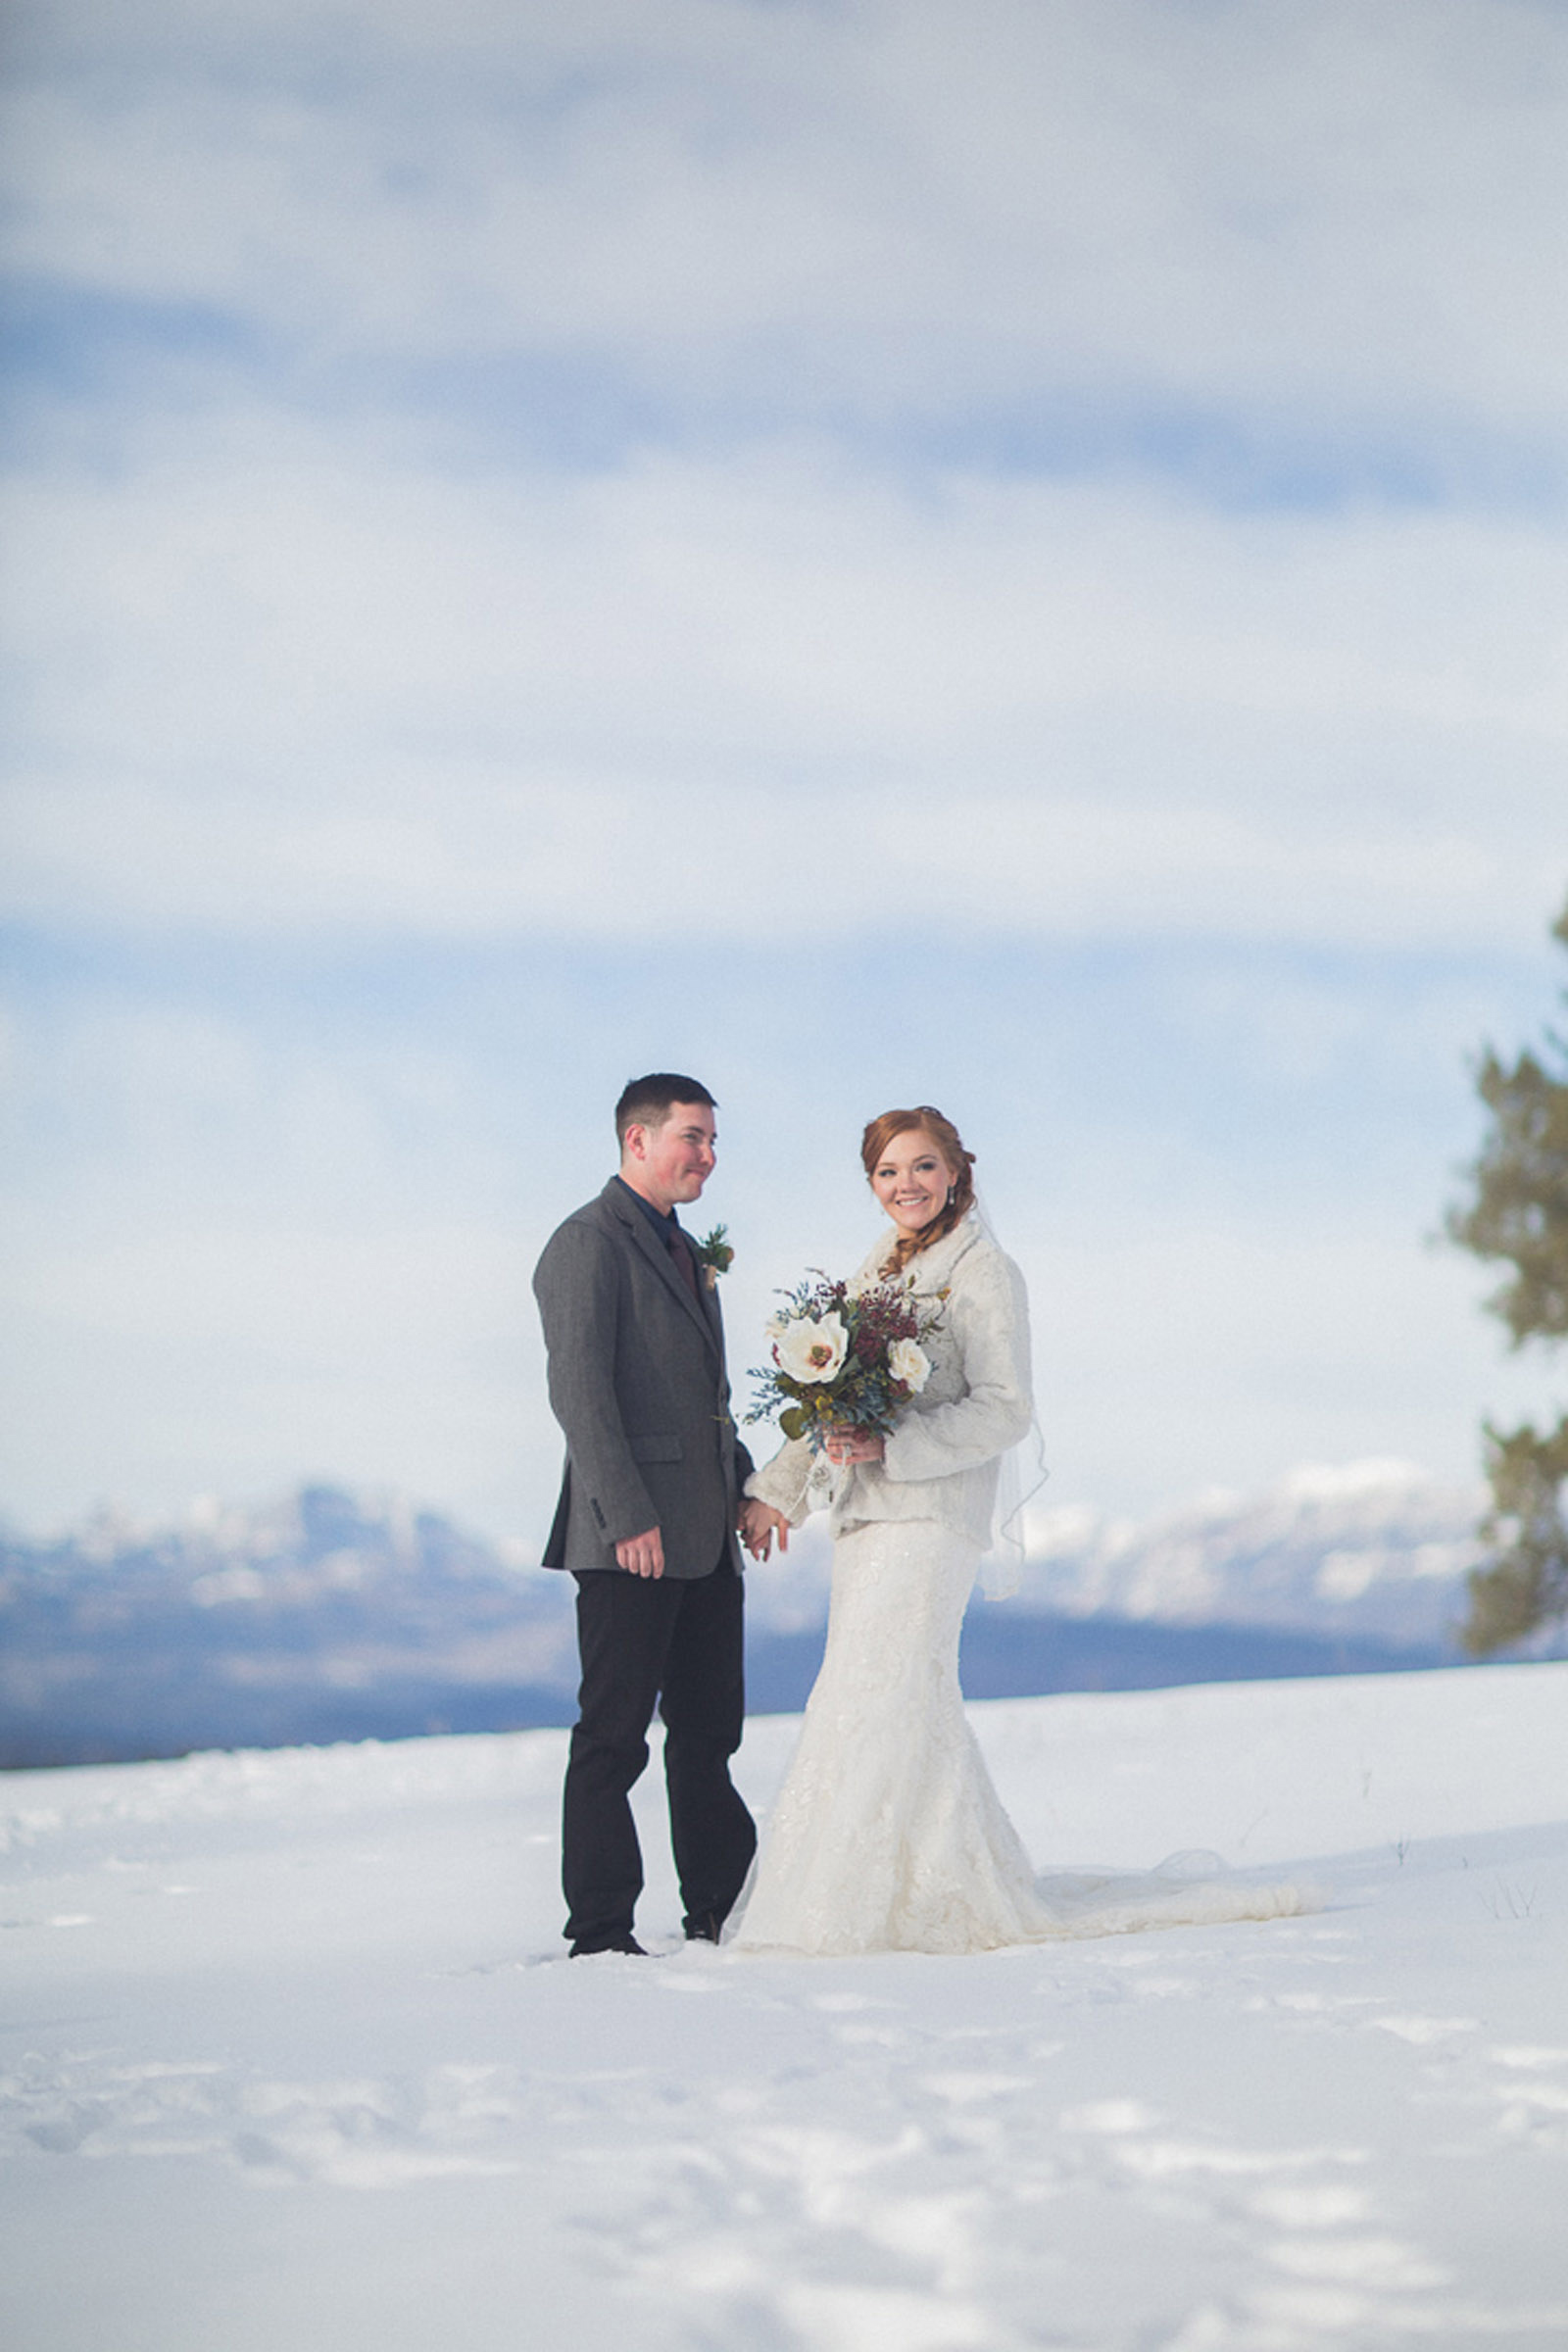 134-wedding-photographer-captures-newlyweds-in-snow-during-a-winter-snow-wedding-in-the-mountains-in-colorado